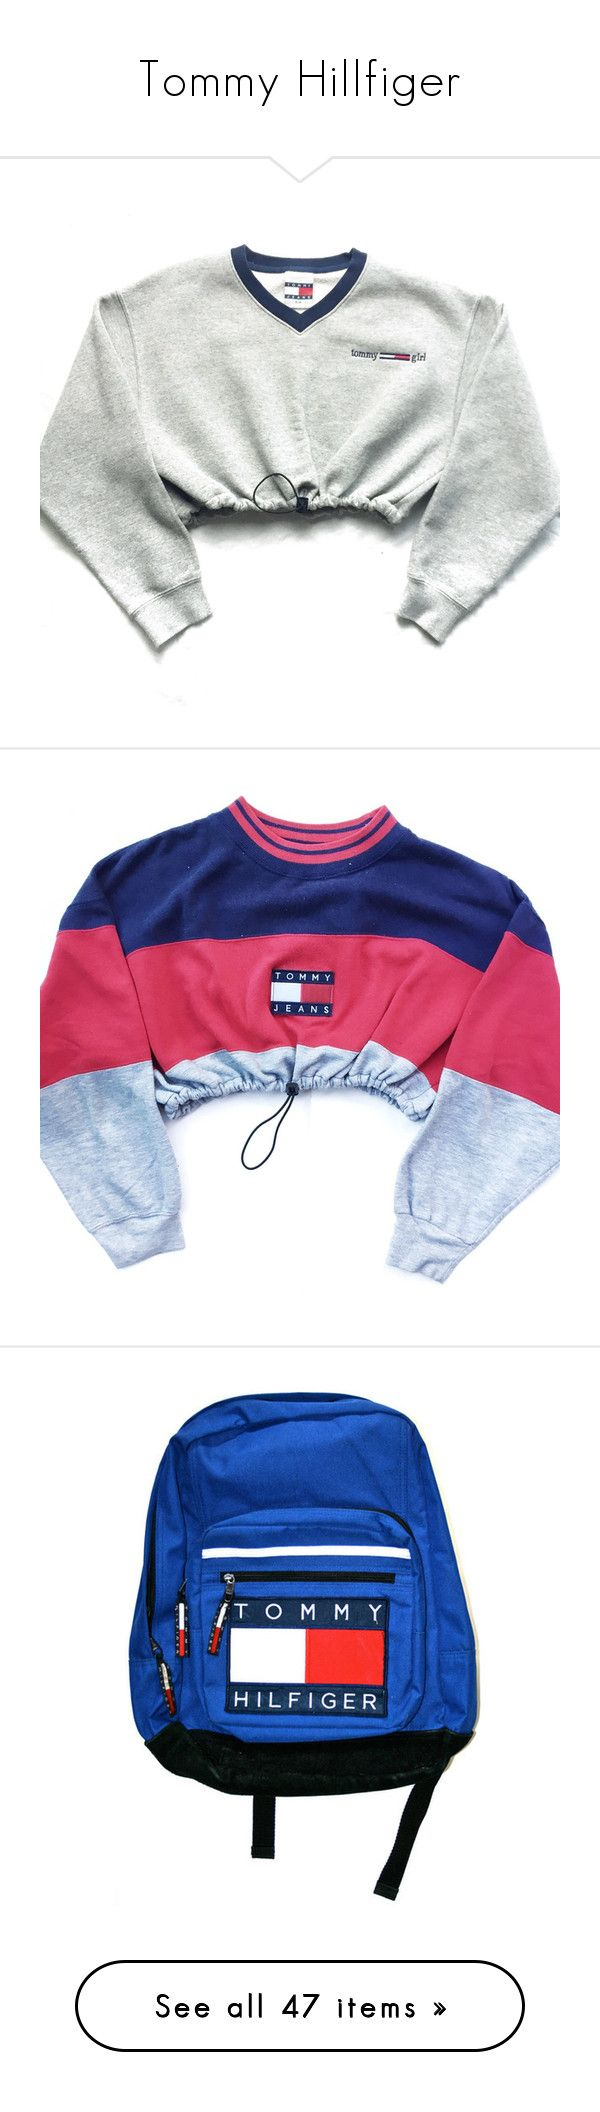 """Tommy Hillfiger"" by nnenna21 ❤ liked on Polyvore featuring tops, hoodies, sweatshirts, shirts, sweaters, crop top, white sweatshirt, vintage sweatshirts, white crop tops and tommy hilfiger"